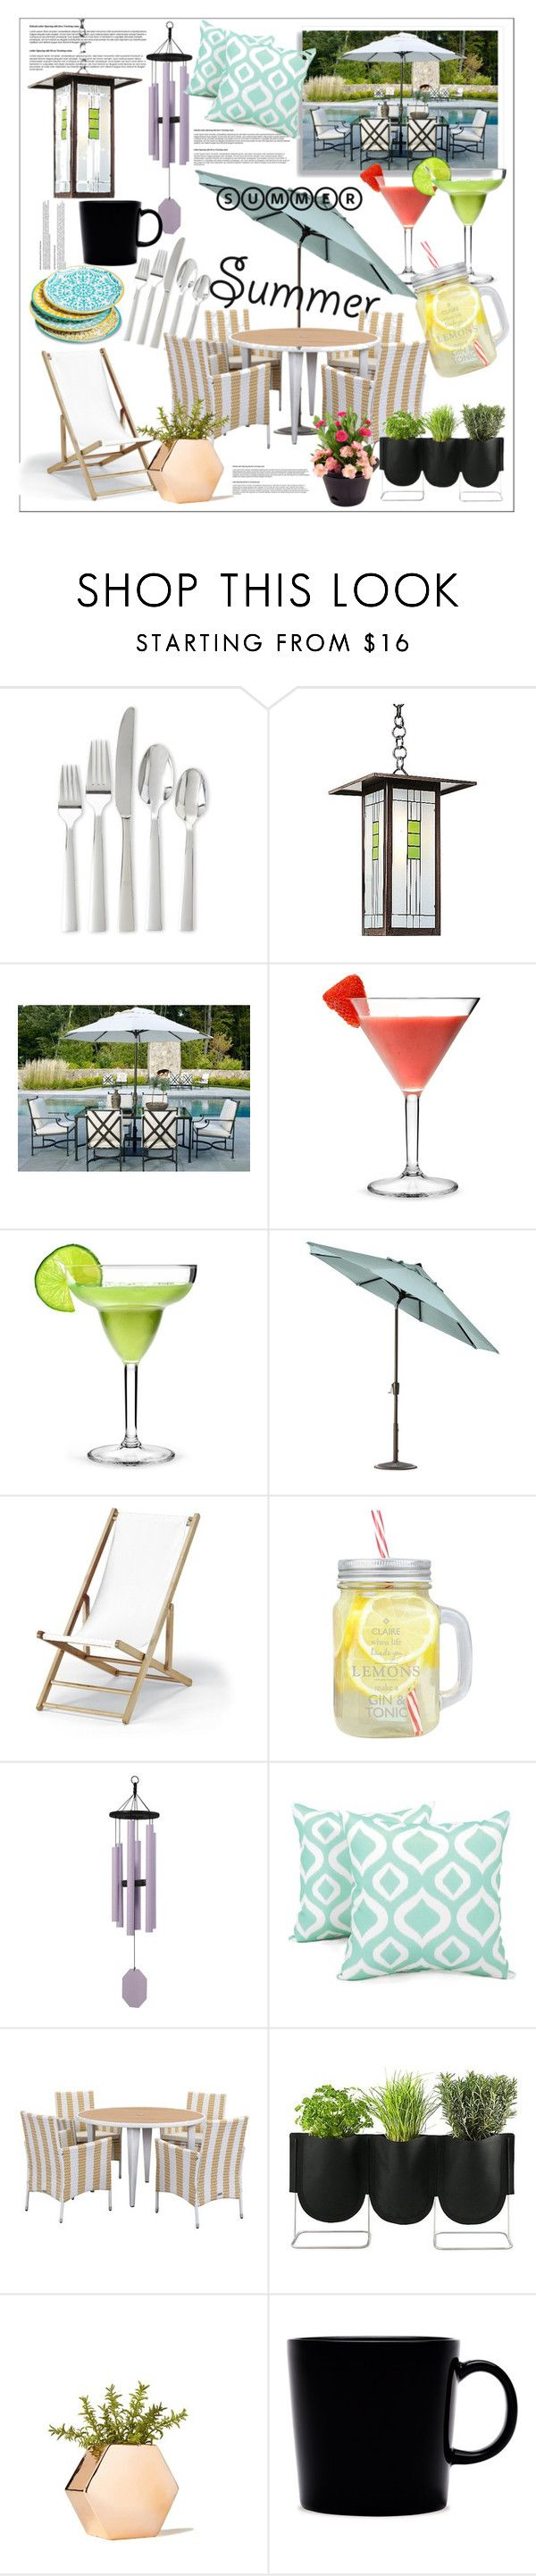 """#45 Summer outdoor dining !😍"" by andreea-cris ❤ liked on Polyvore featuring interior, interiors, interior design, home, home decor, interior decorating, Oneida, Universal Lighting and Decor, Home Decorators Collection and Telescope Casual"